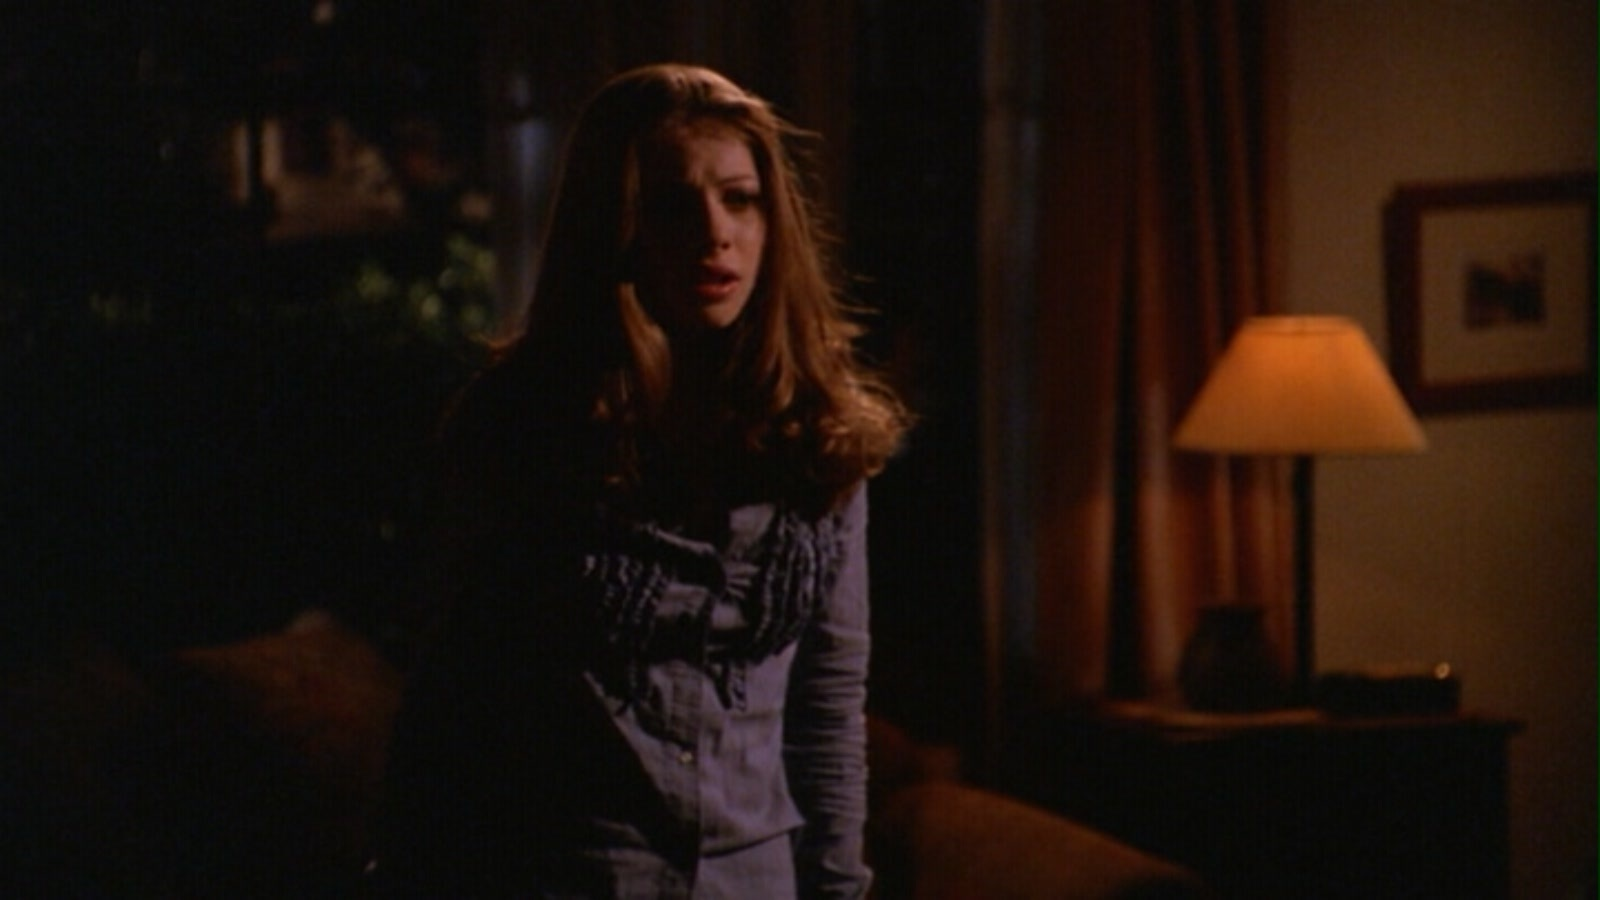 an analysis of the tv show buffy the vampire slayers episode dead mans party An action-packed collection of comics based on the acclaimed tv show 24 follow jack bauer's exploits before president palmer's victory as he.